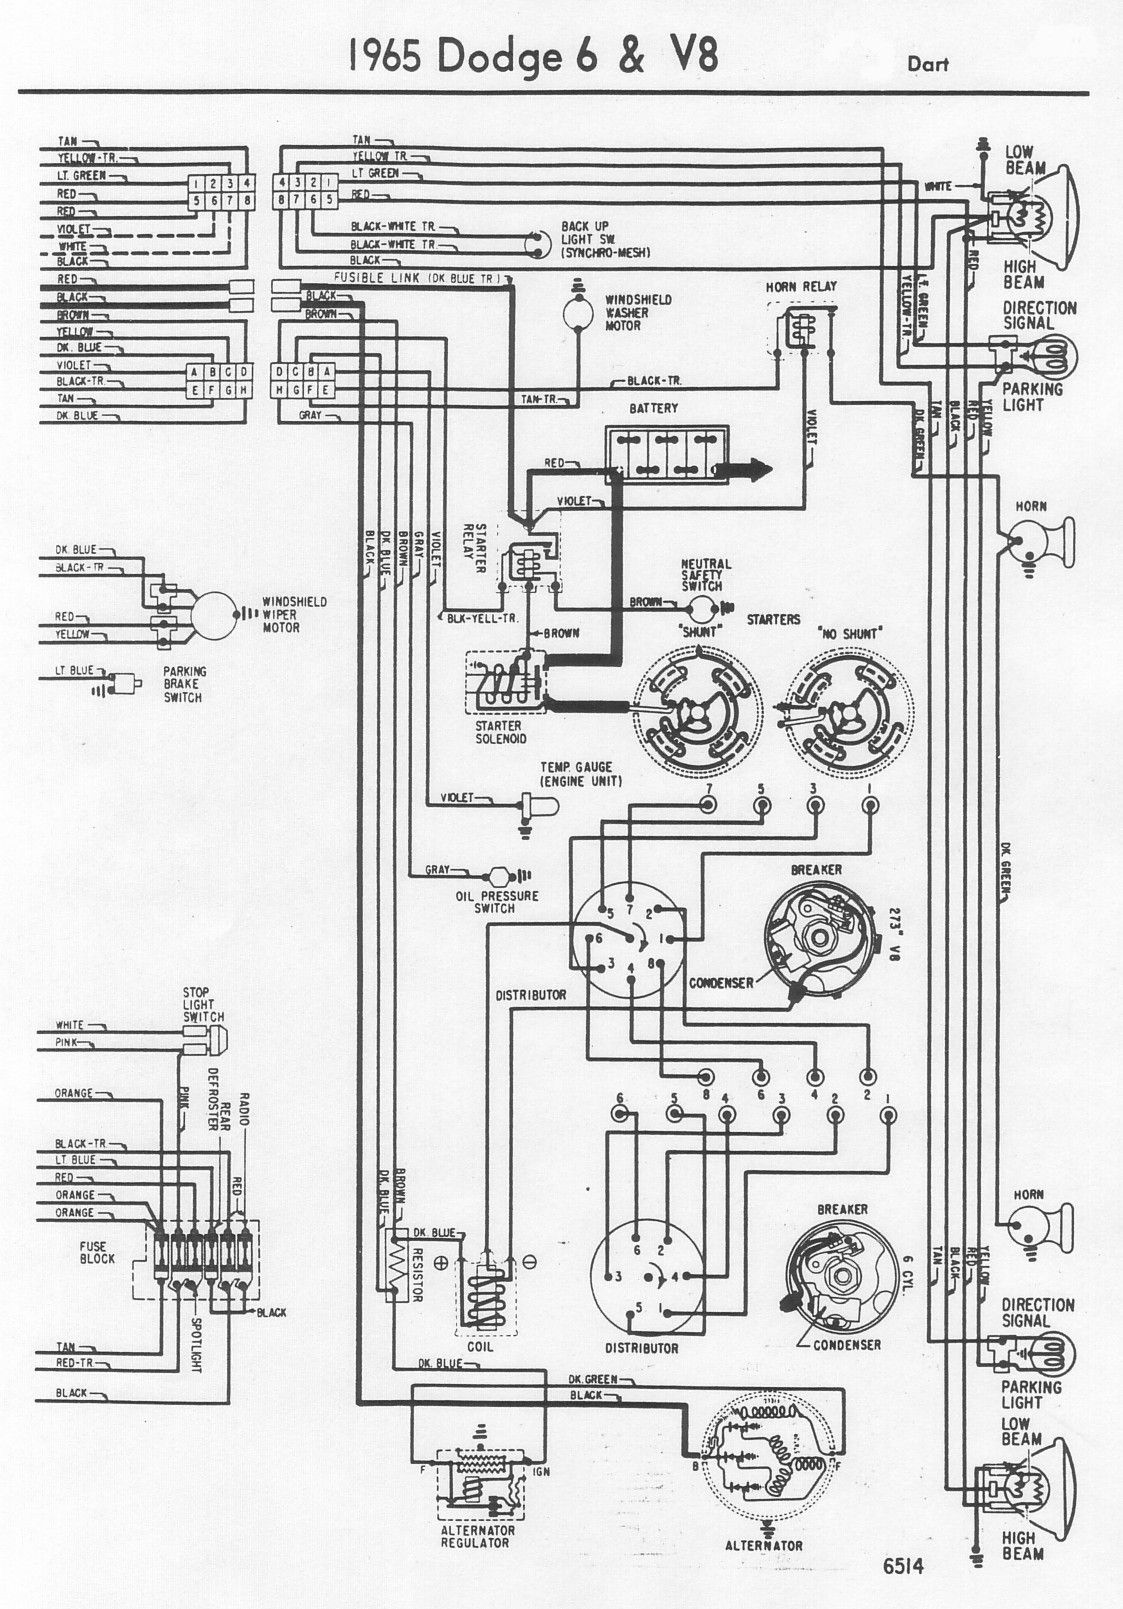 71 Dart Wiring Diagram